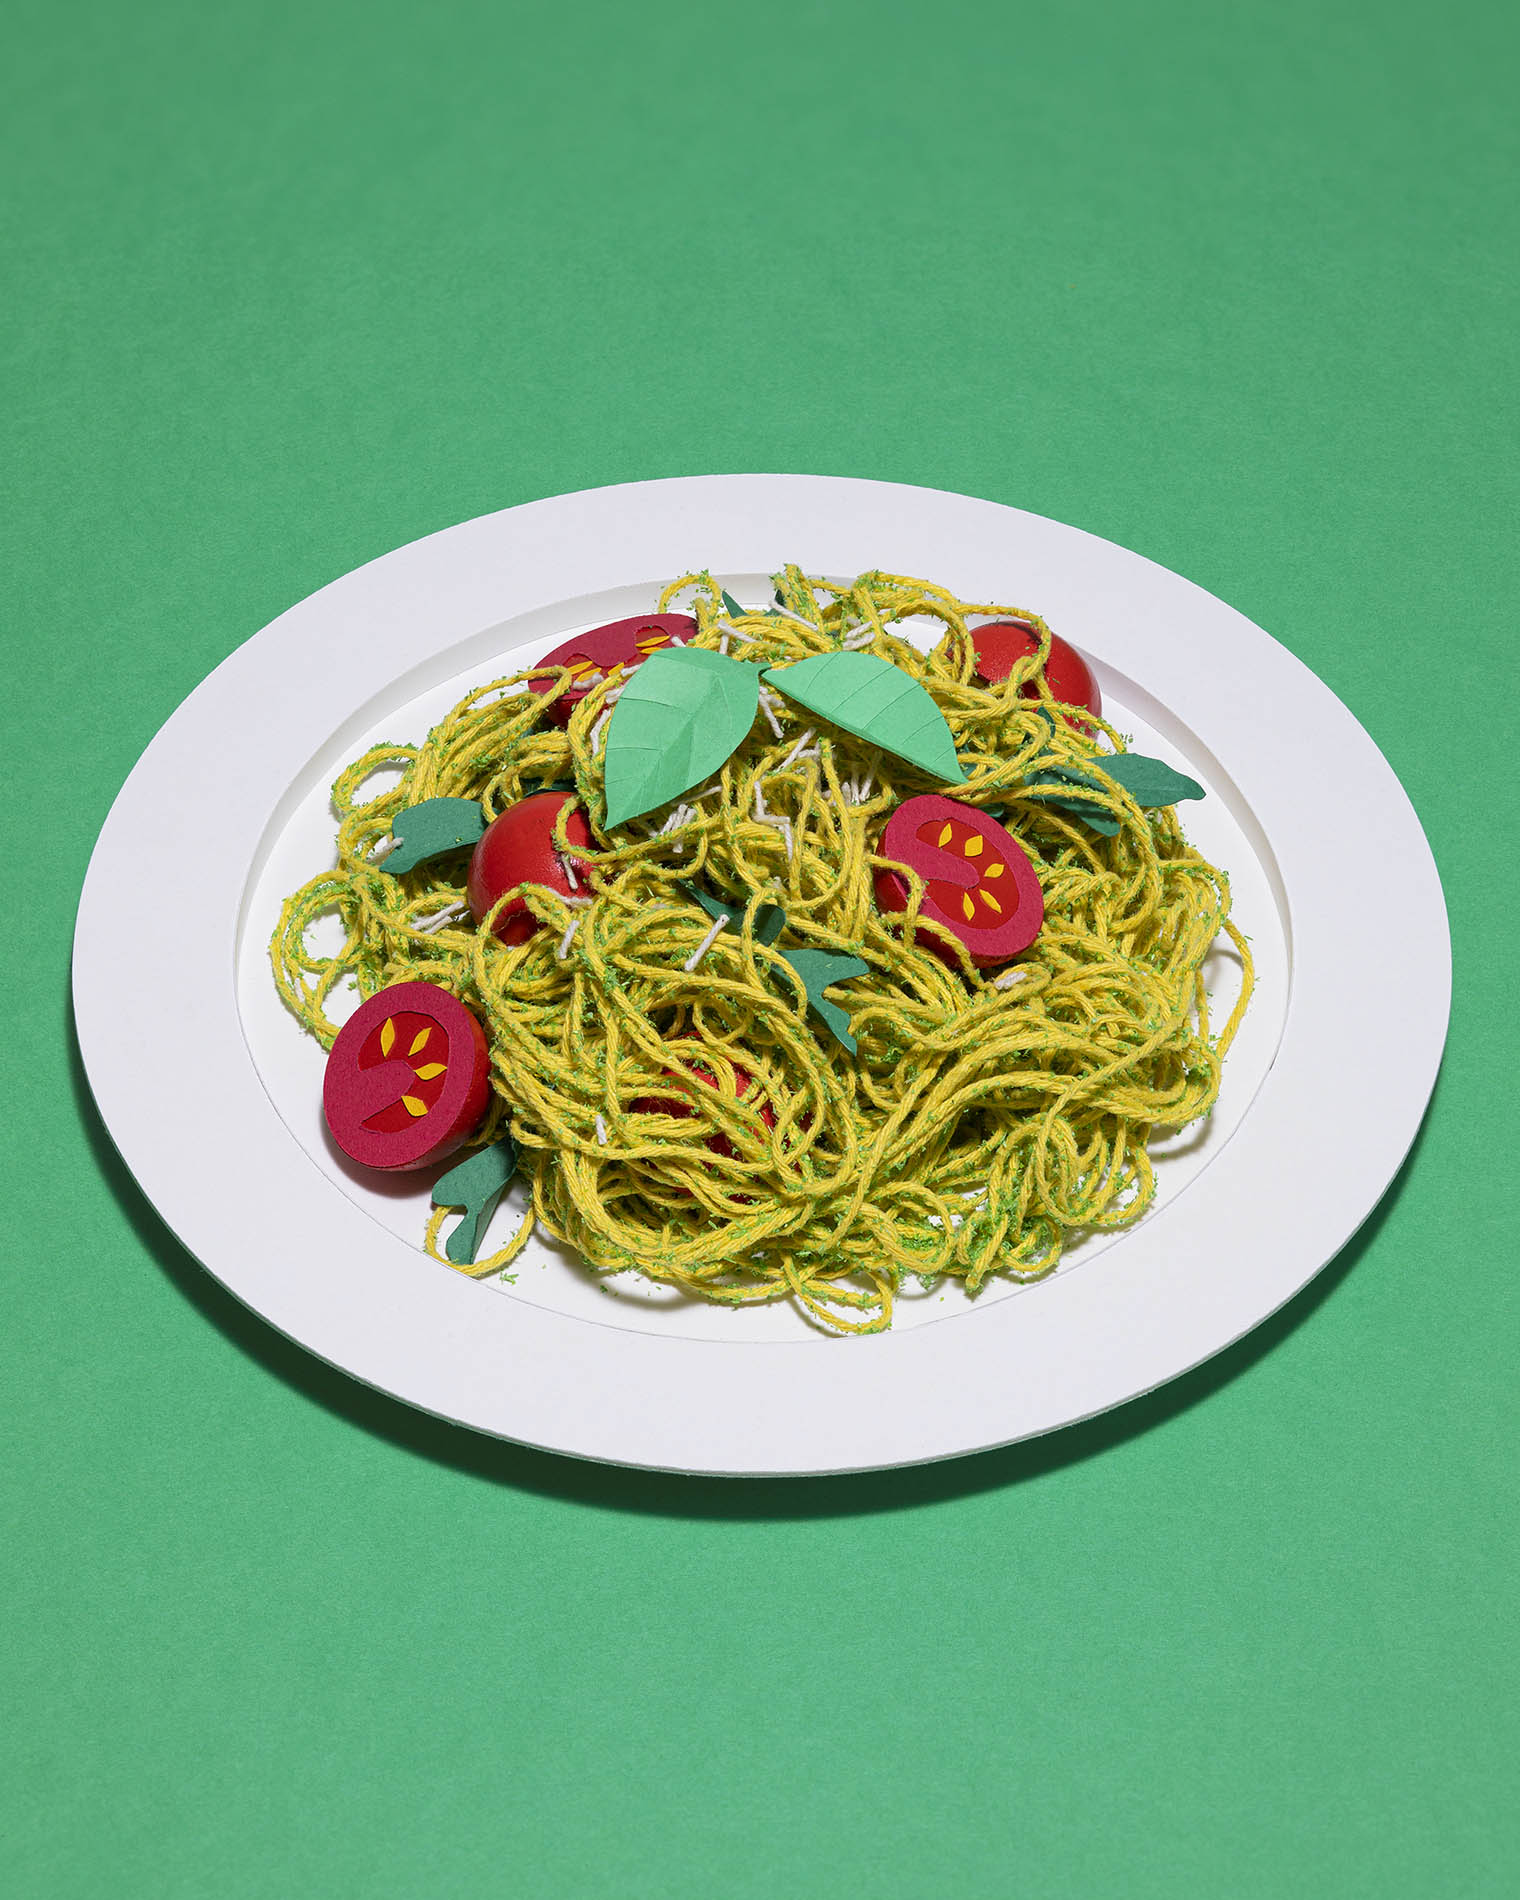 Today's Meal: Pesto Pasta